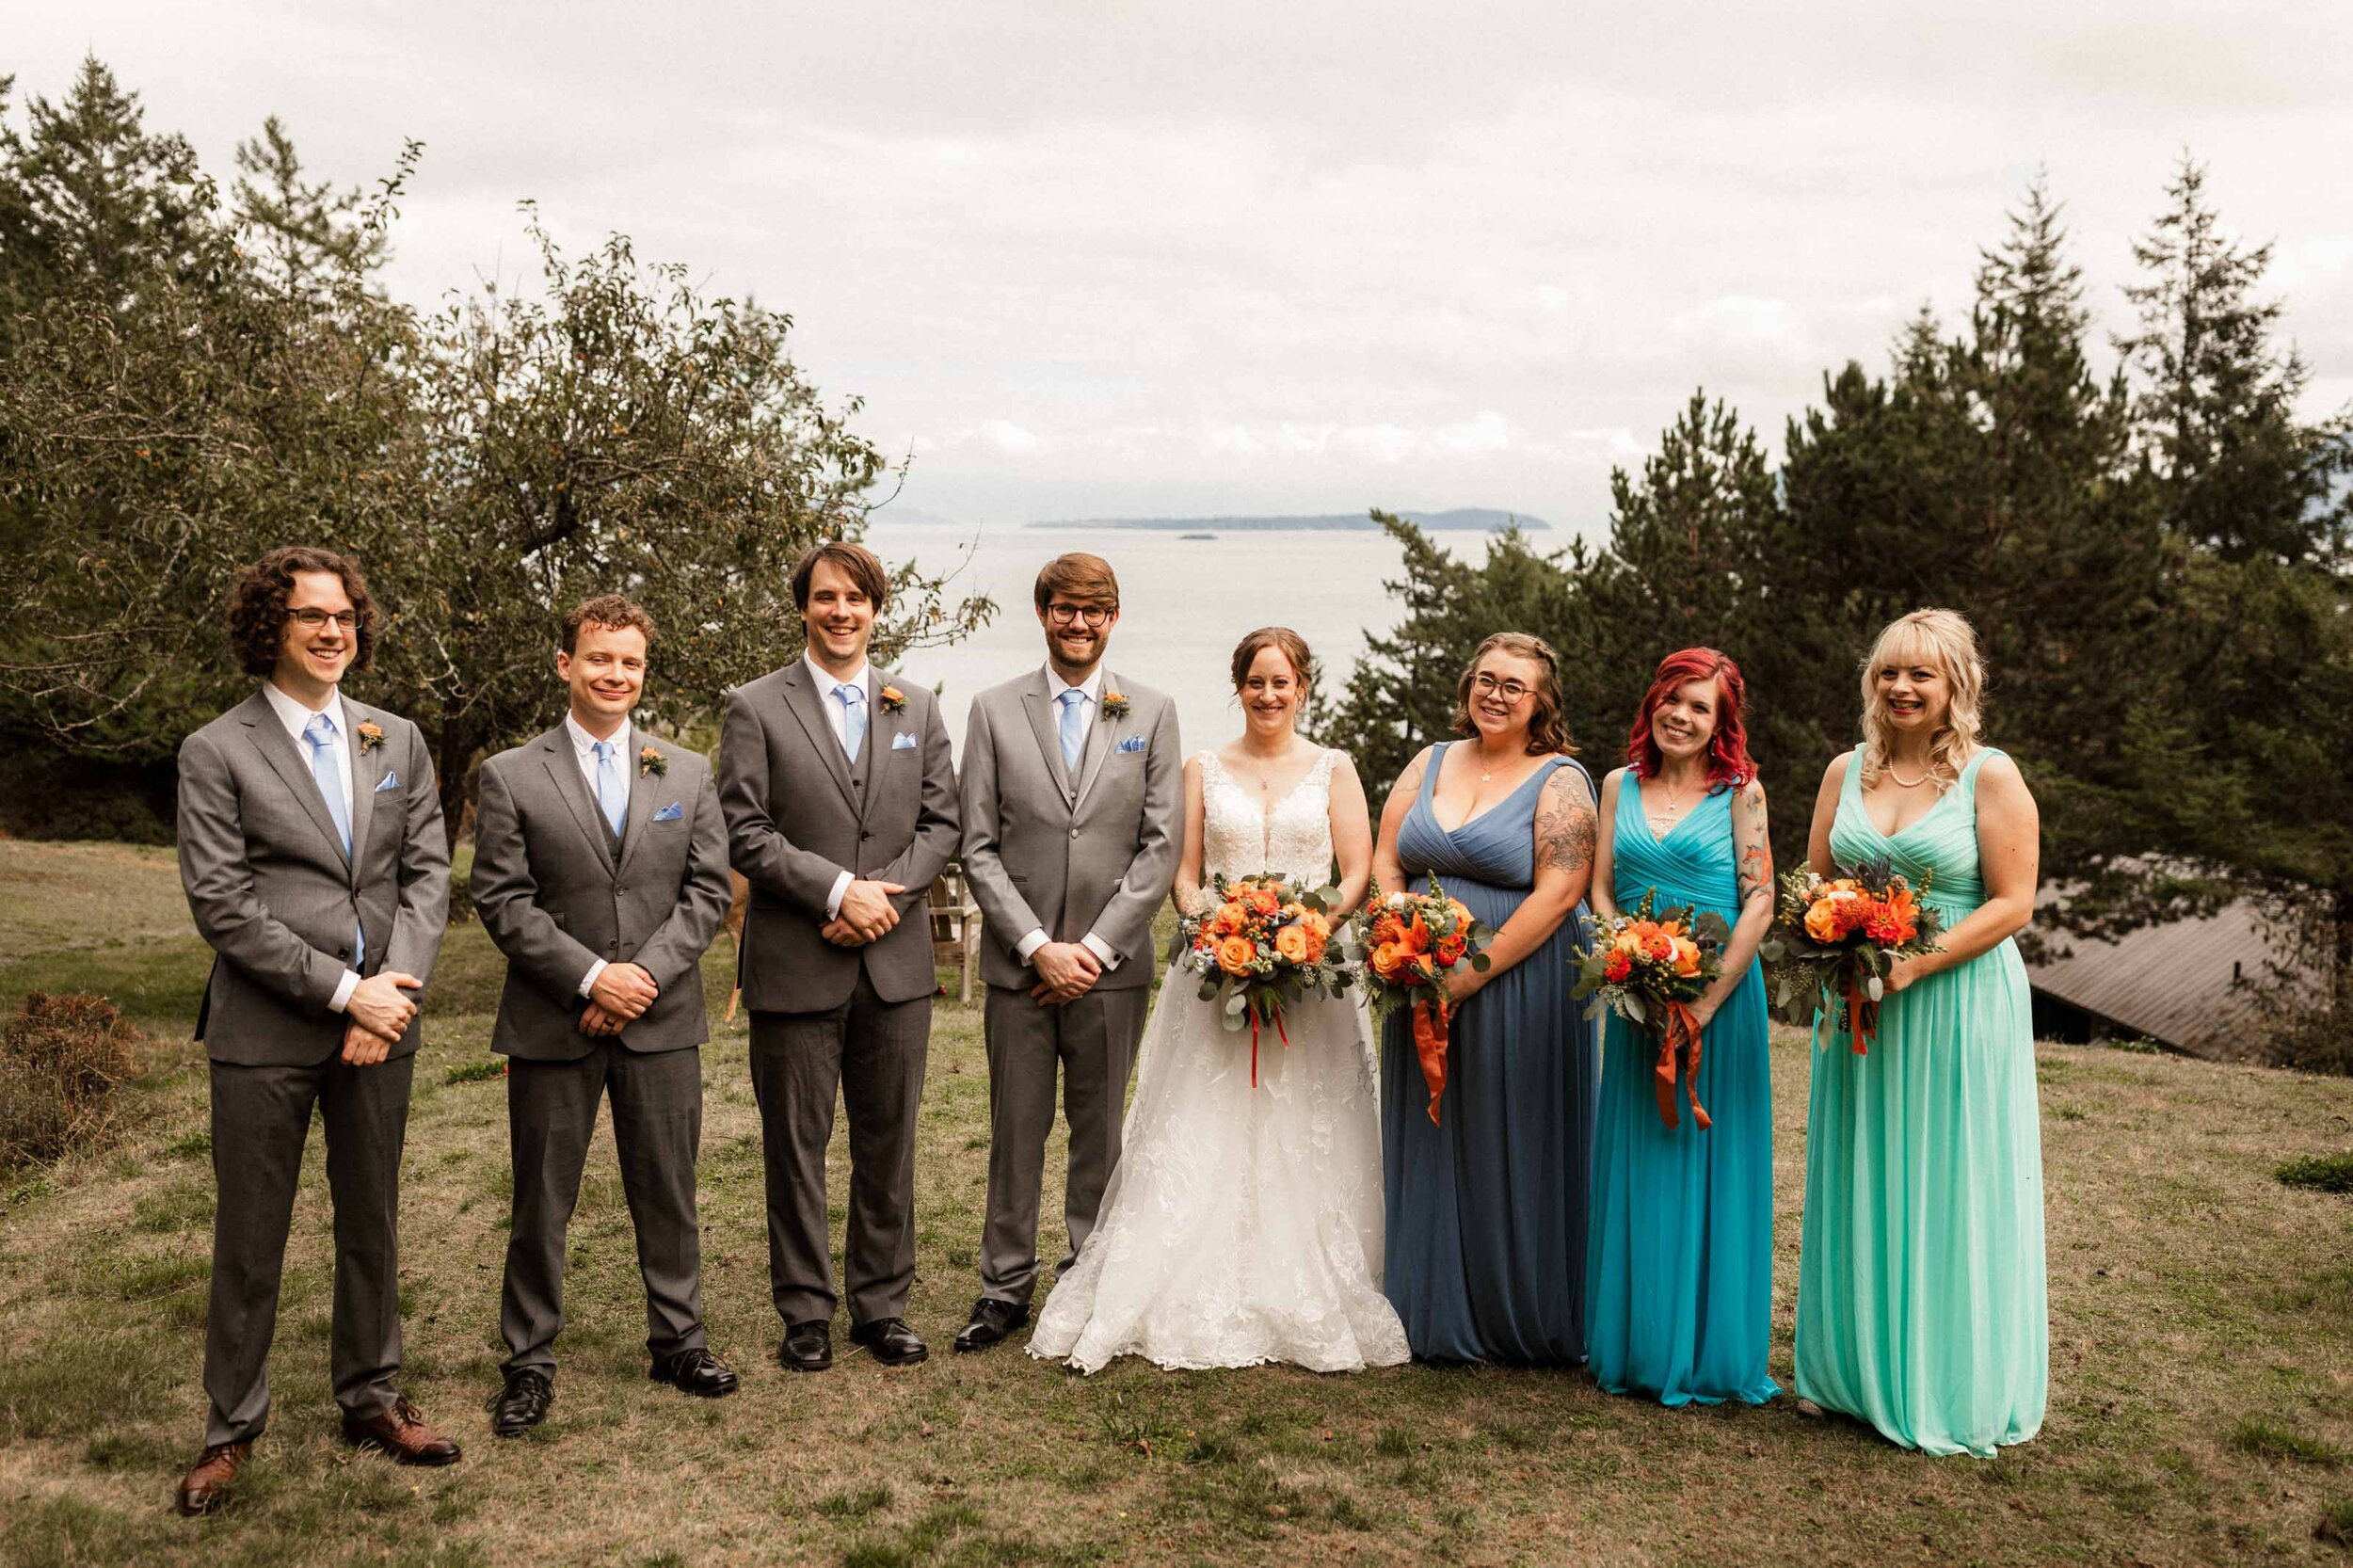 orcas-island-wedding-36.jpg